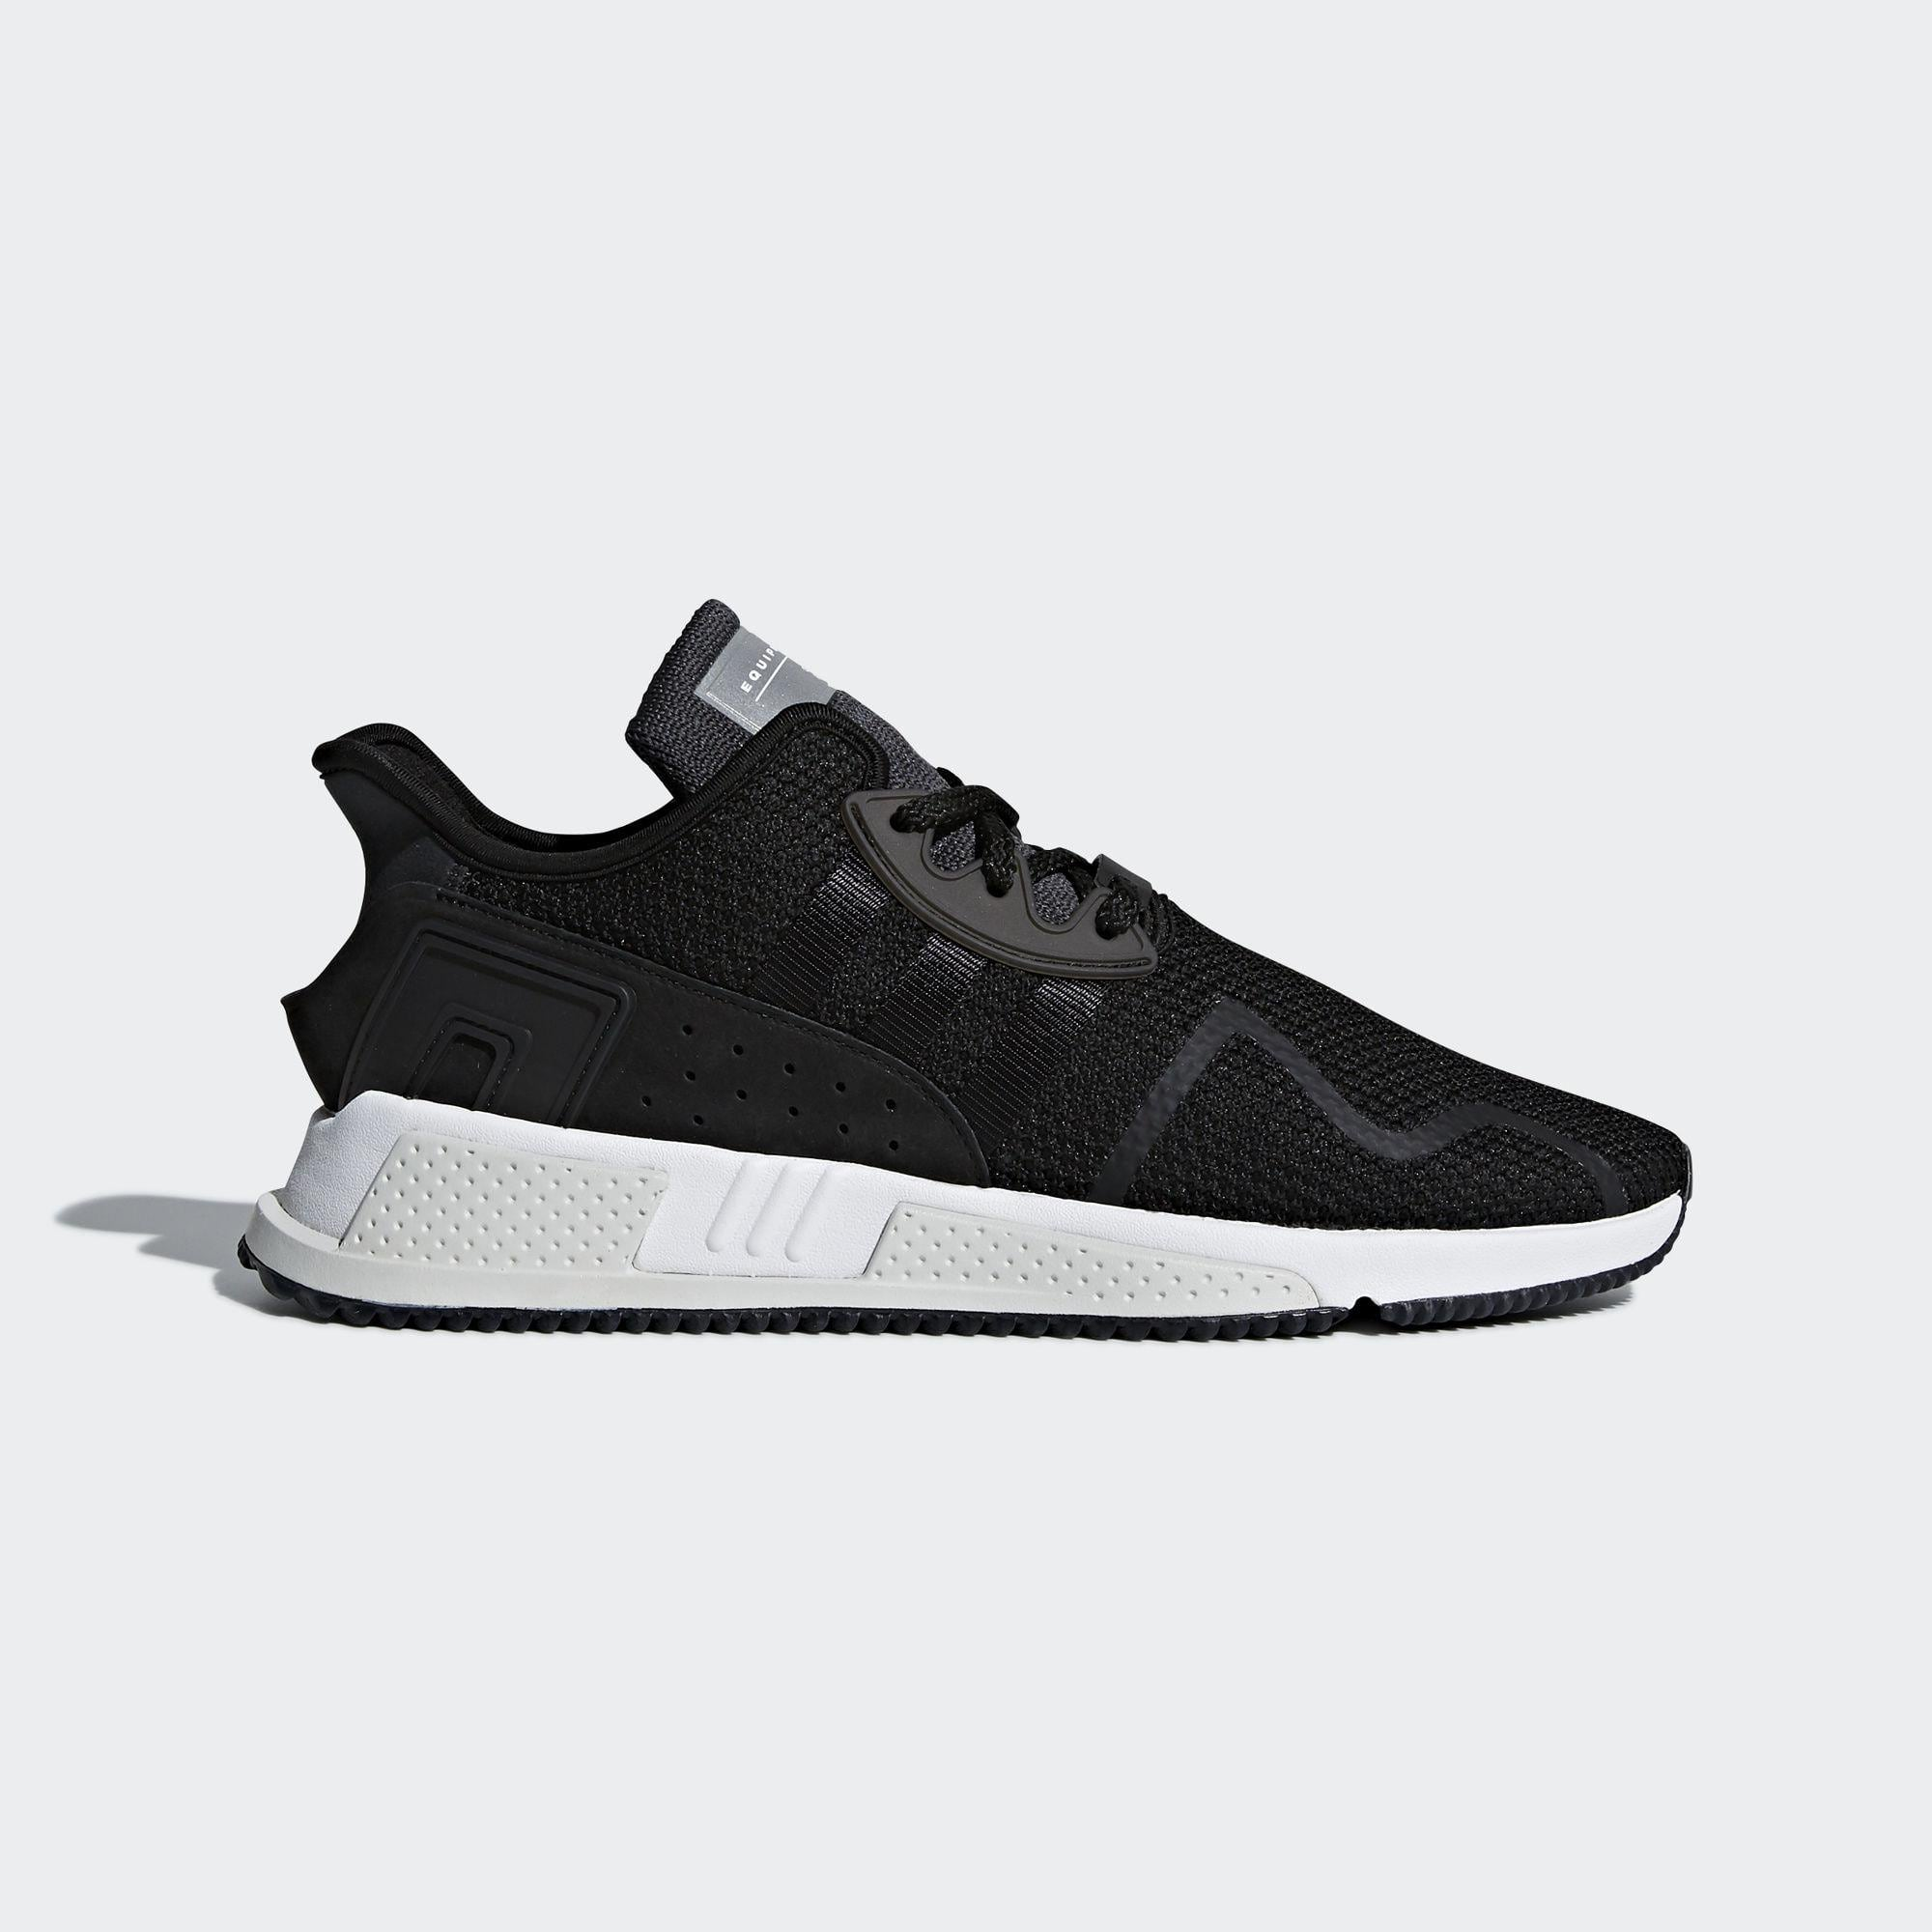 new style c242f 39a7d adidas Men's EQT Cushion ADV Shoes (Black) - Slickdeals.net